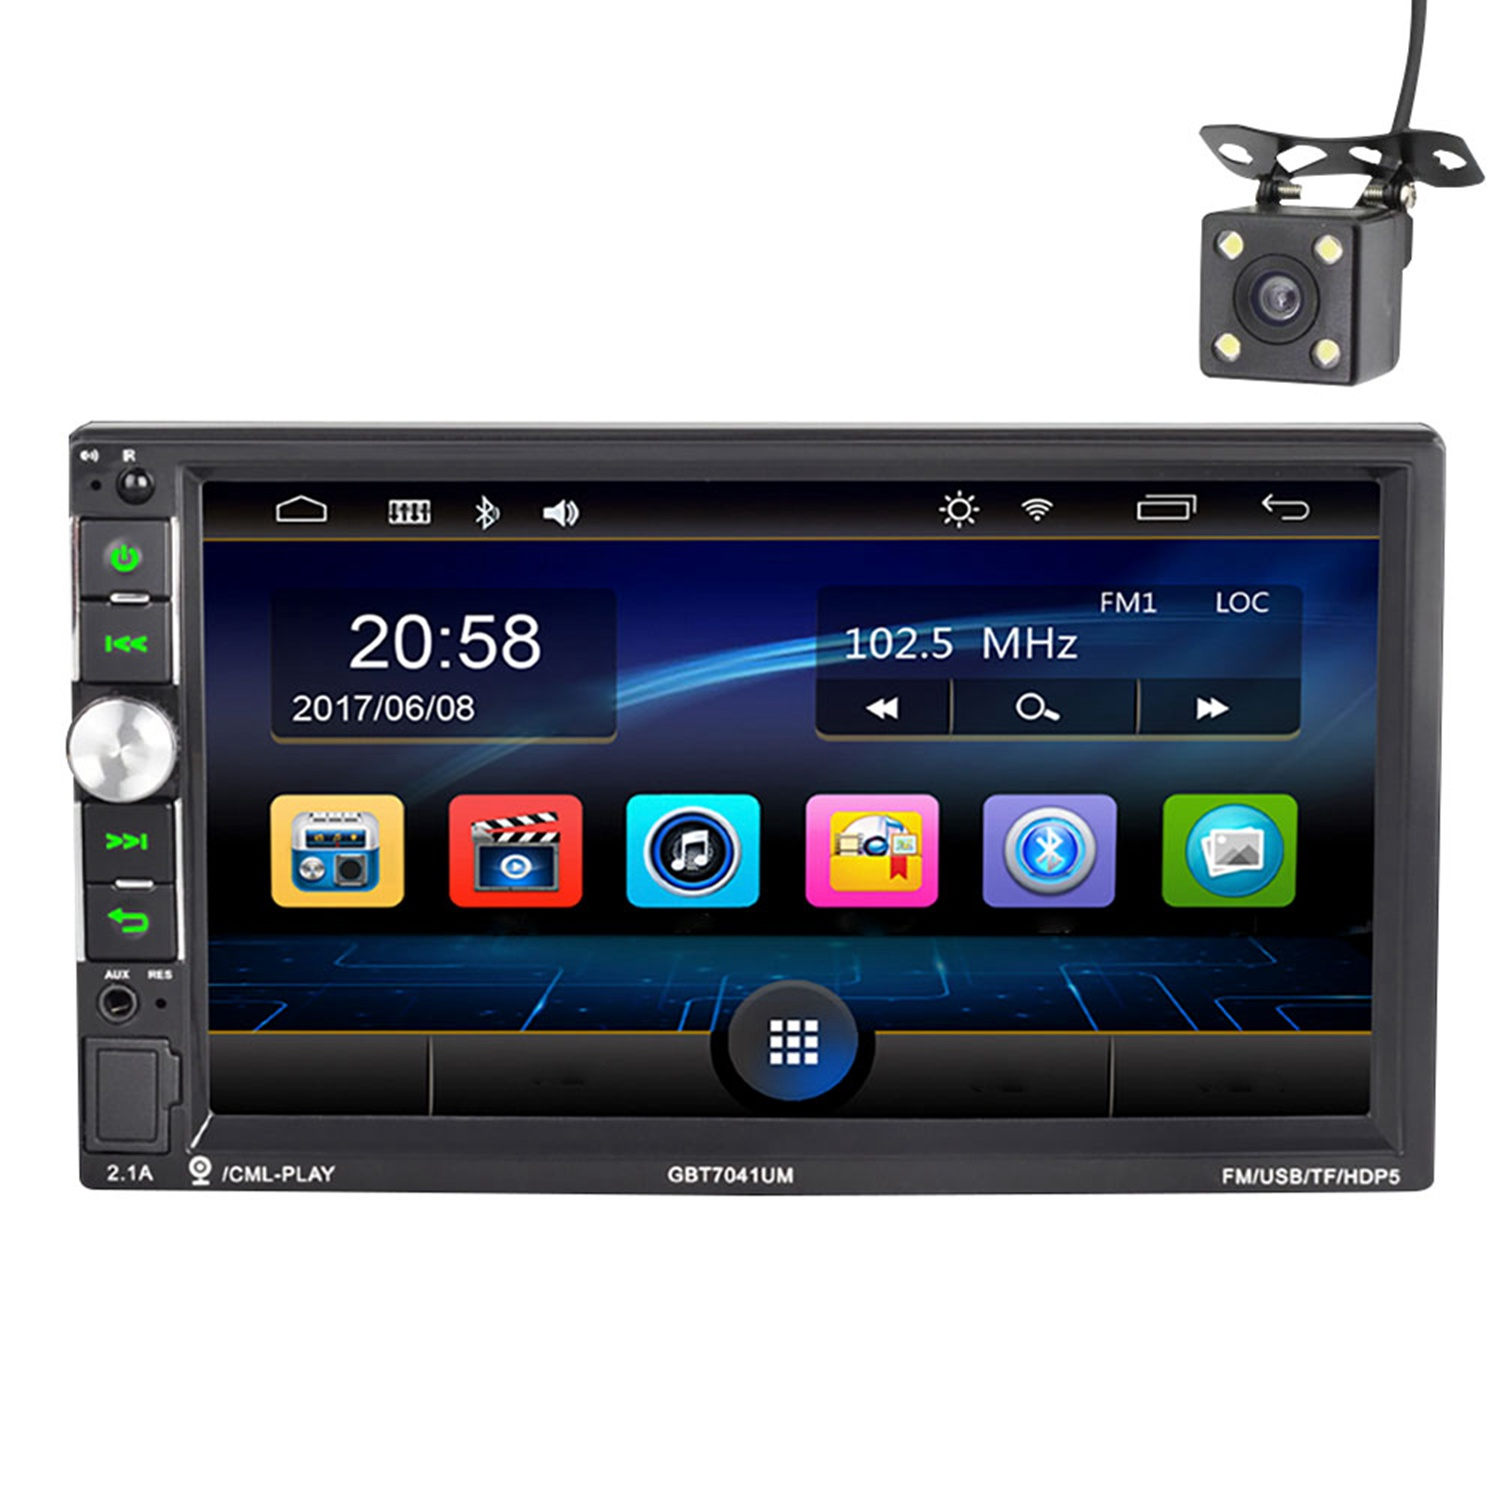 Unterhaltungselektronik 7041car Video Player 7 Zoll Hd Player Mp5 Presse Digital Display Bluetooth Multimedia Usb Auto Radio Auto Radio üBerlegene Materialien Tragbares Audio & Video